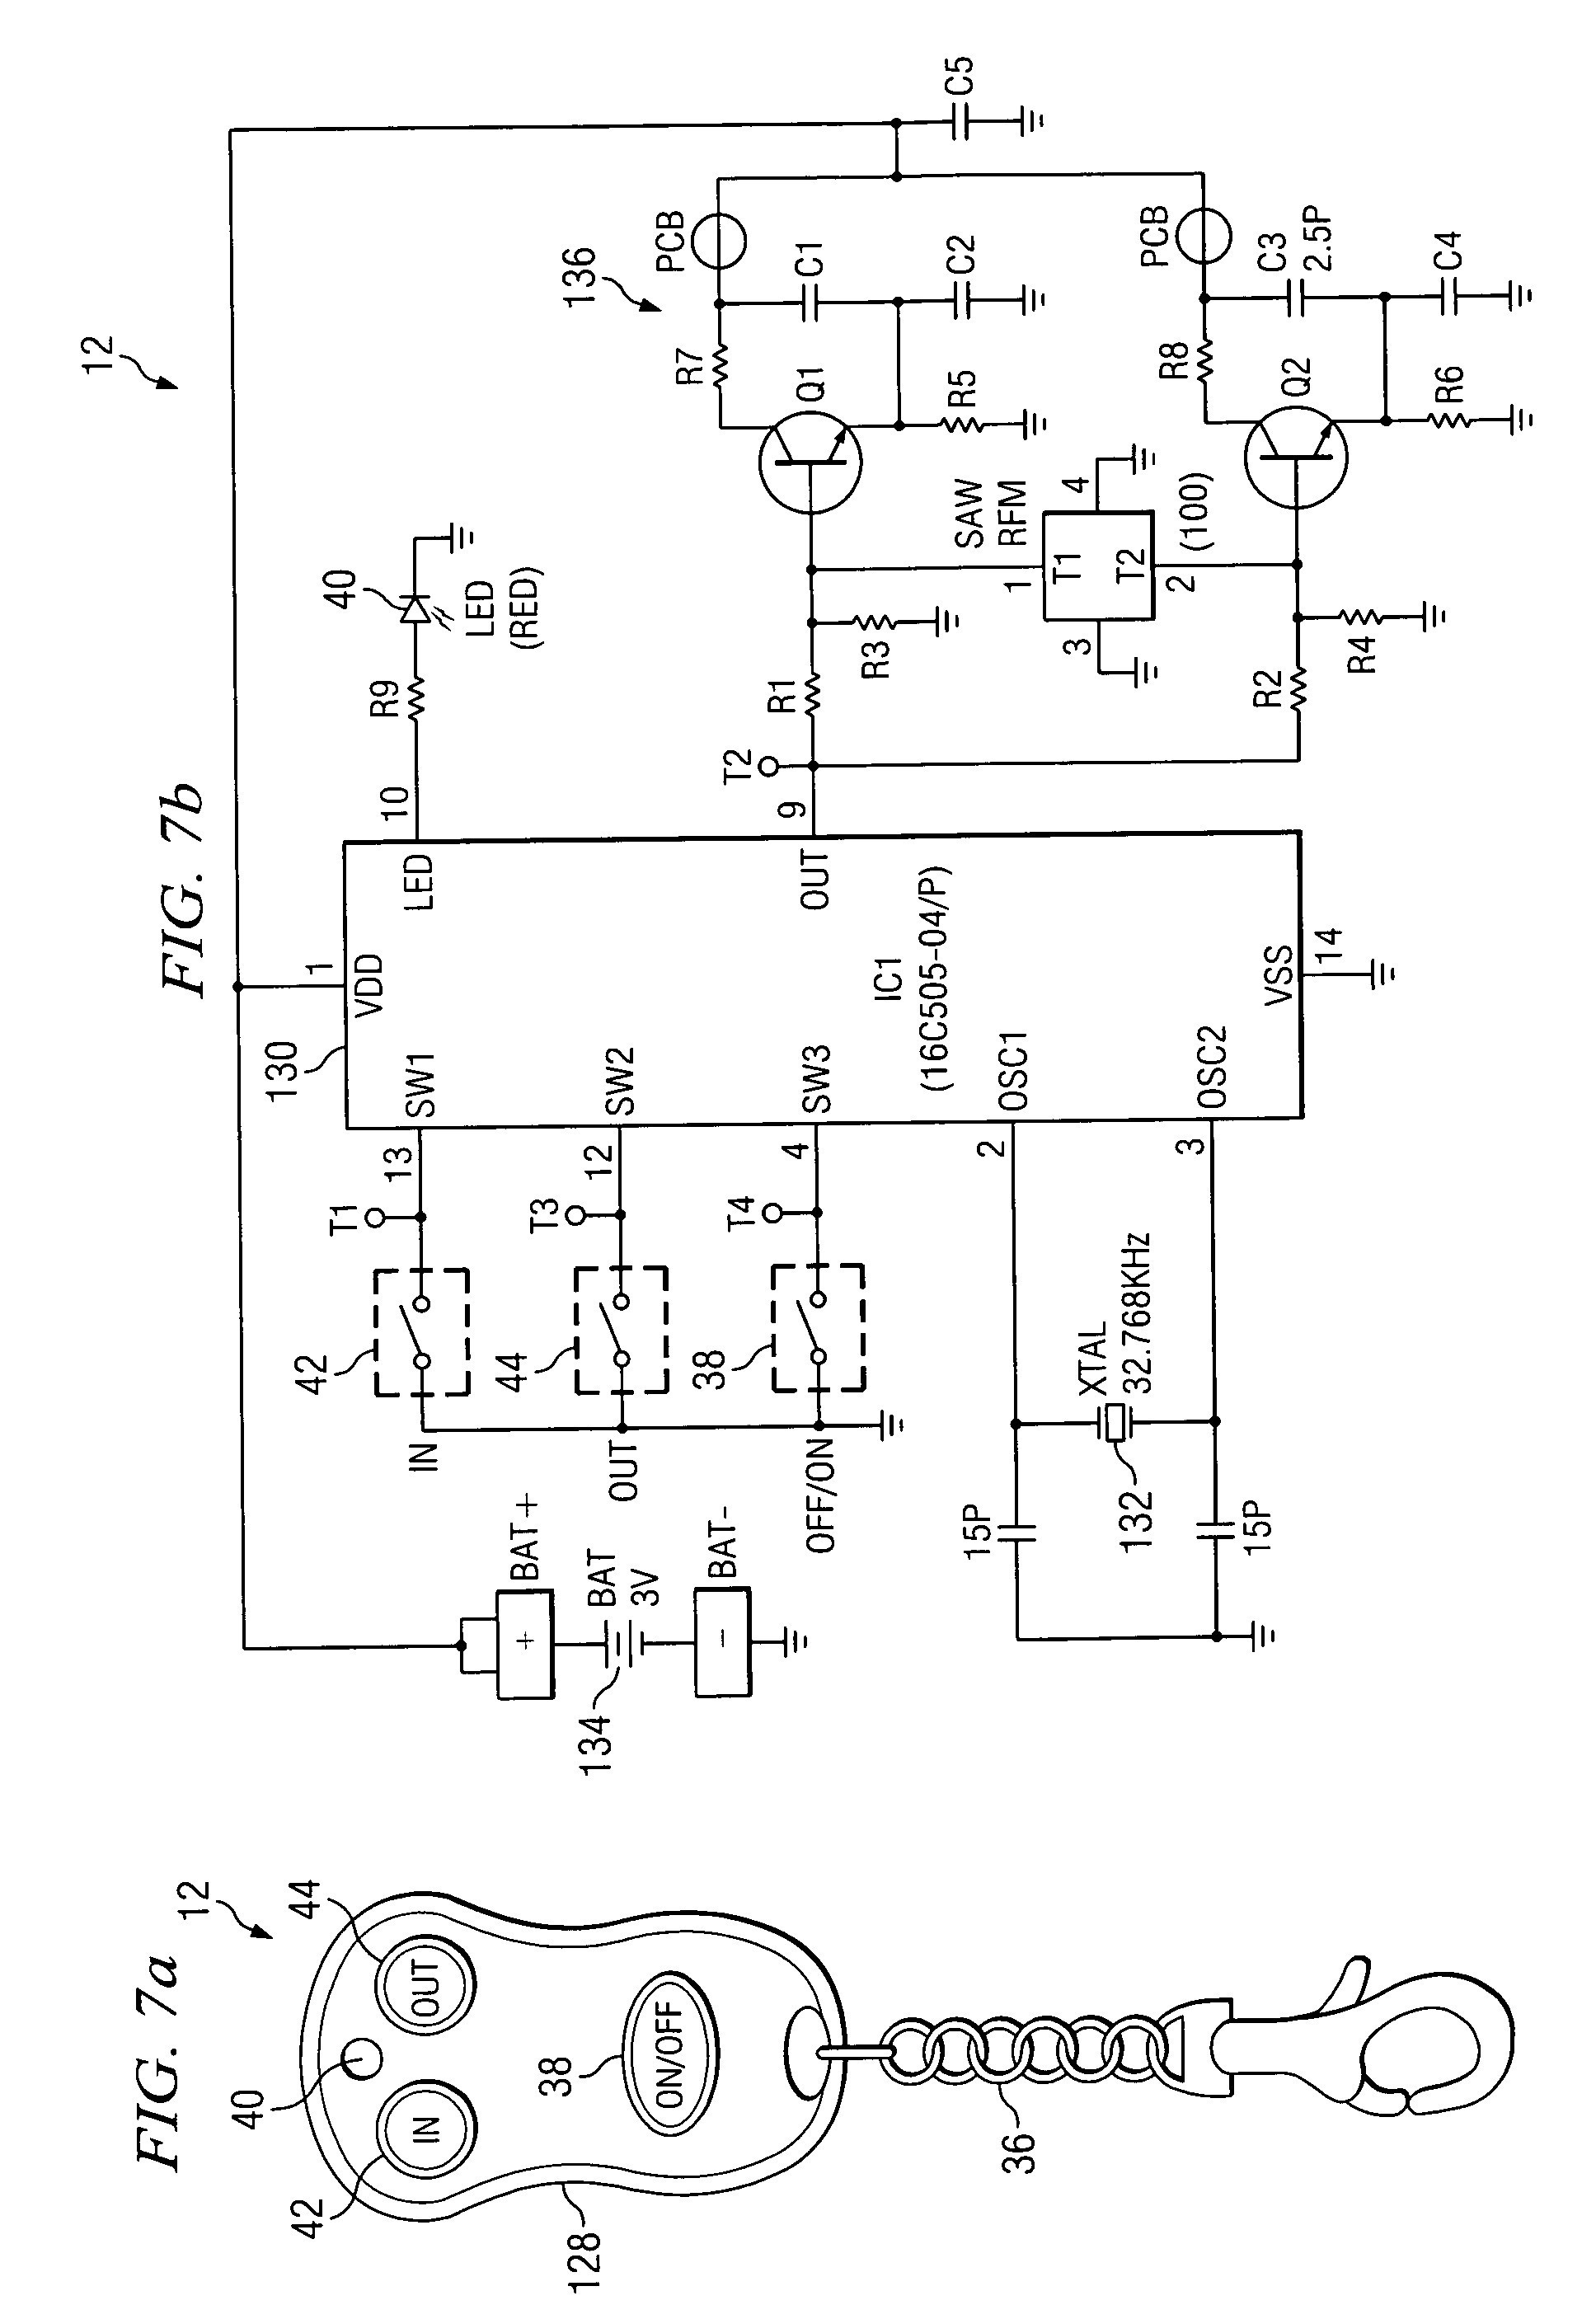 Diagram Demag Hoist Circuit Diagram